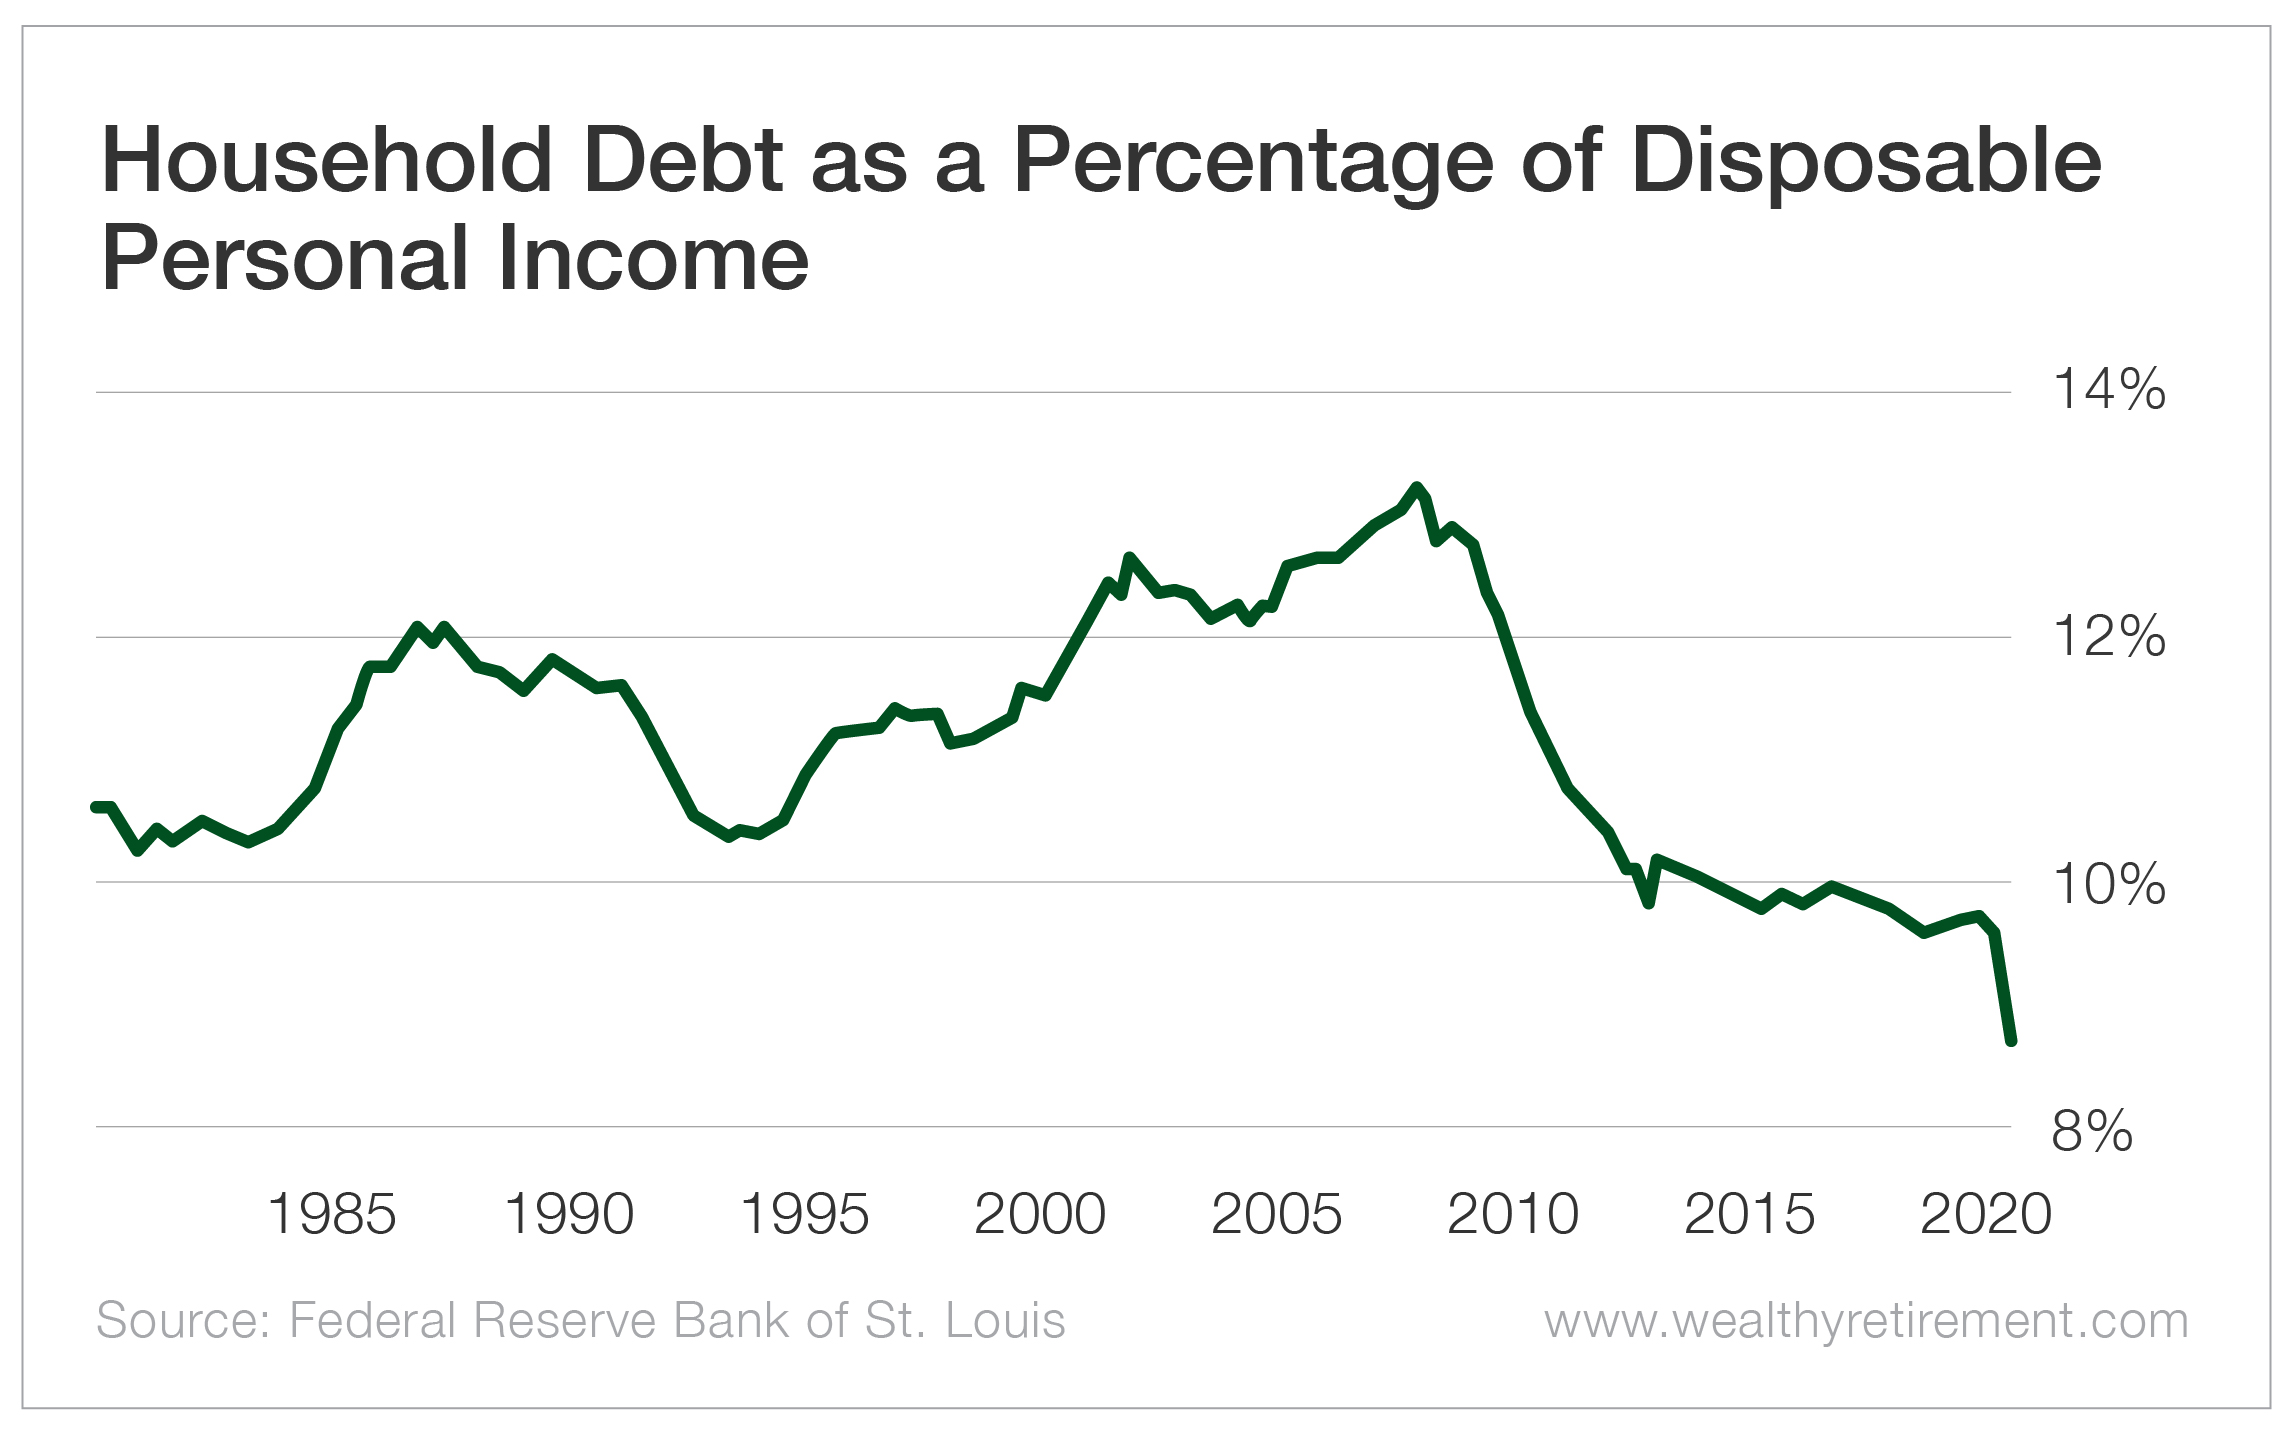 Household Debt as a Percentage of Disposable Personal Income